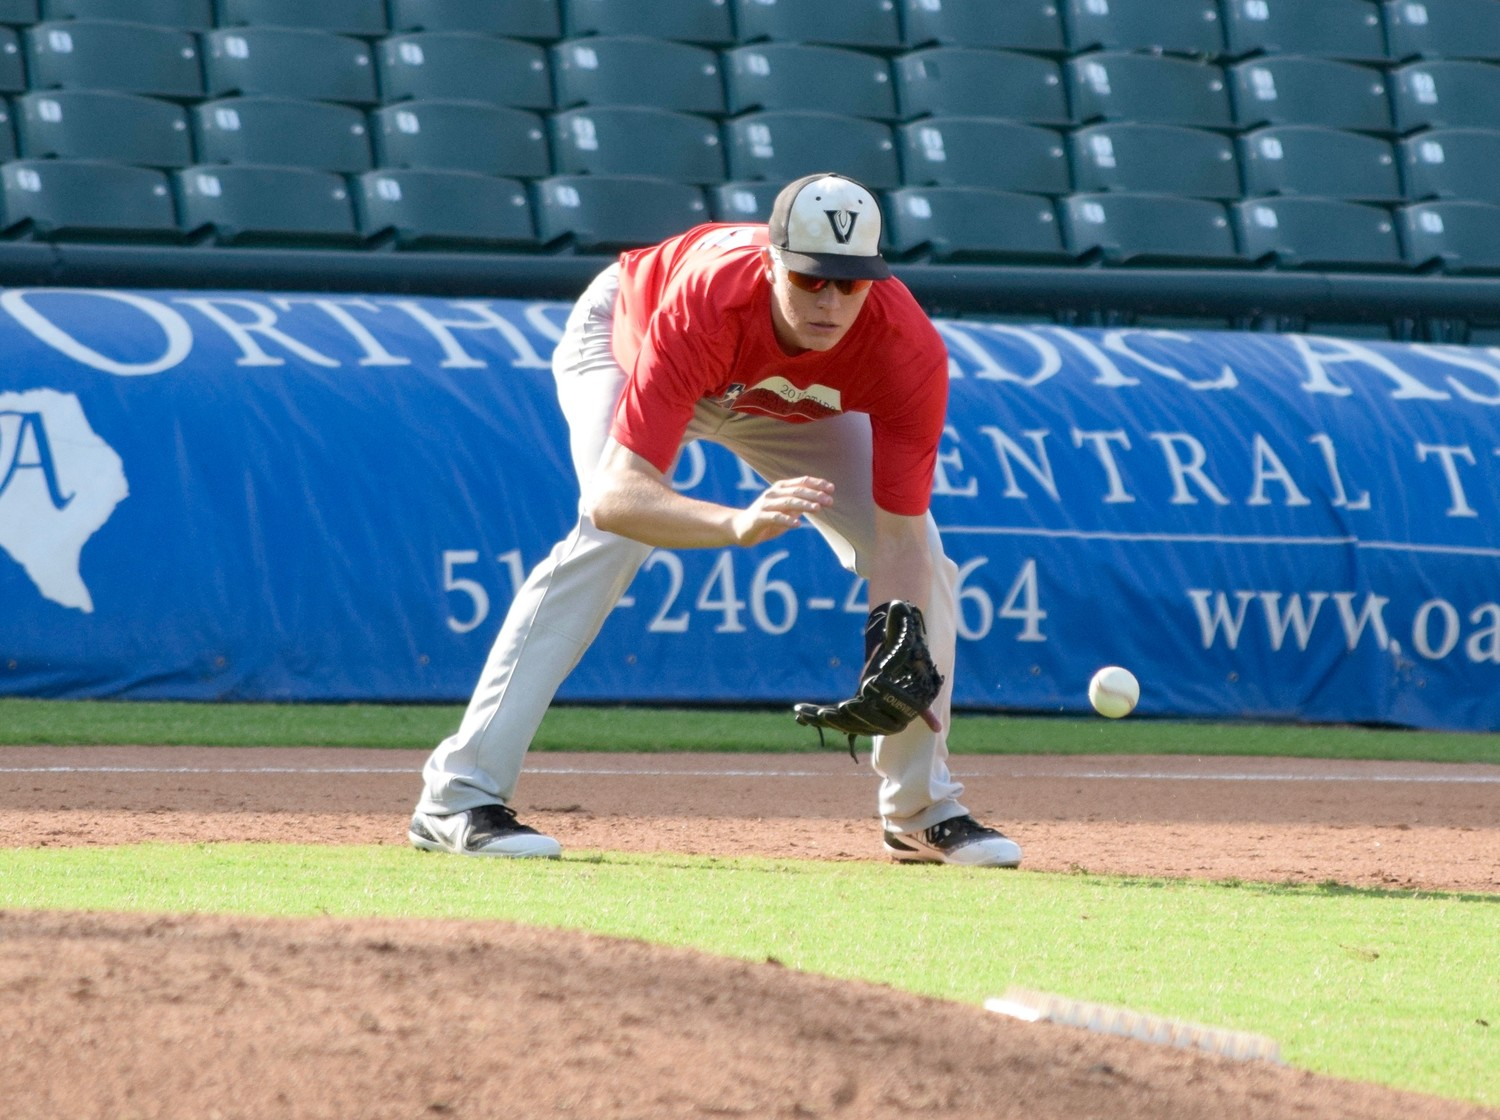 Vandegrift senior Justin Moore and participated in the Austin Area Baseball Coaches Association All-Star Game Saturday at Dell Diamond. His South team lost to the North 21-5.